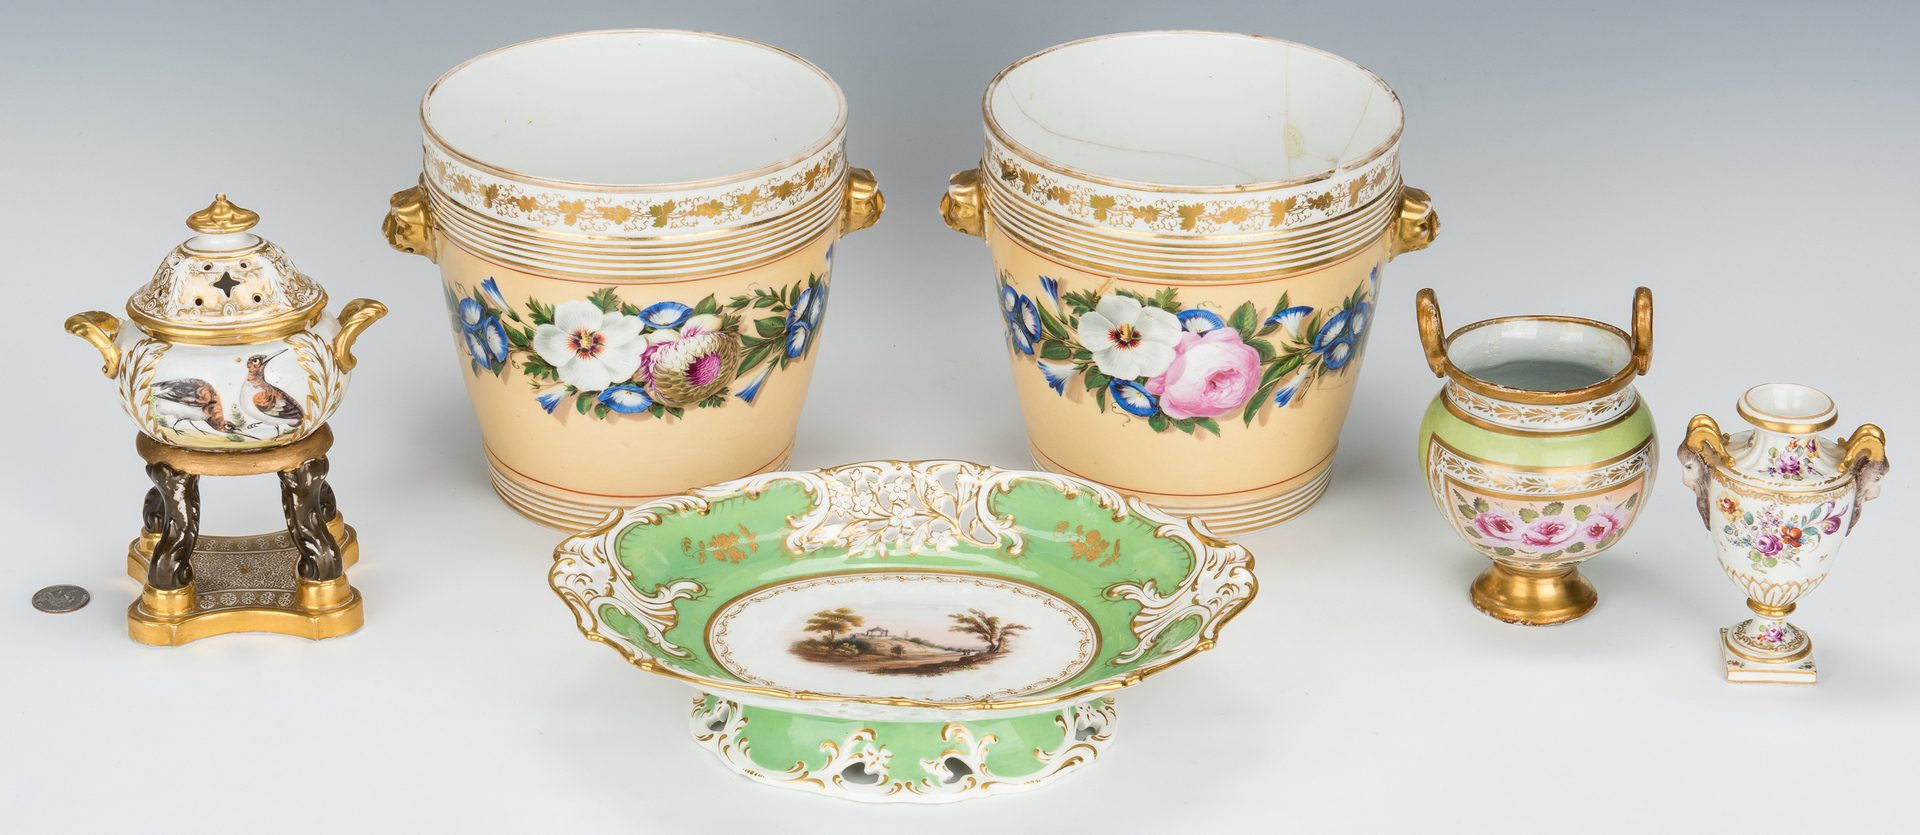 Lot 328: 6 pcs. English and Continental Porcelain